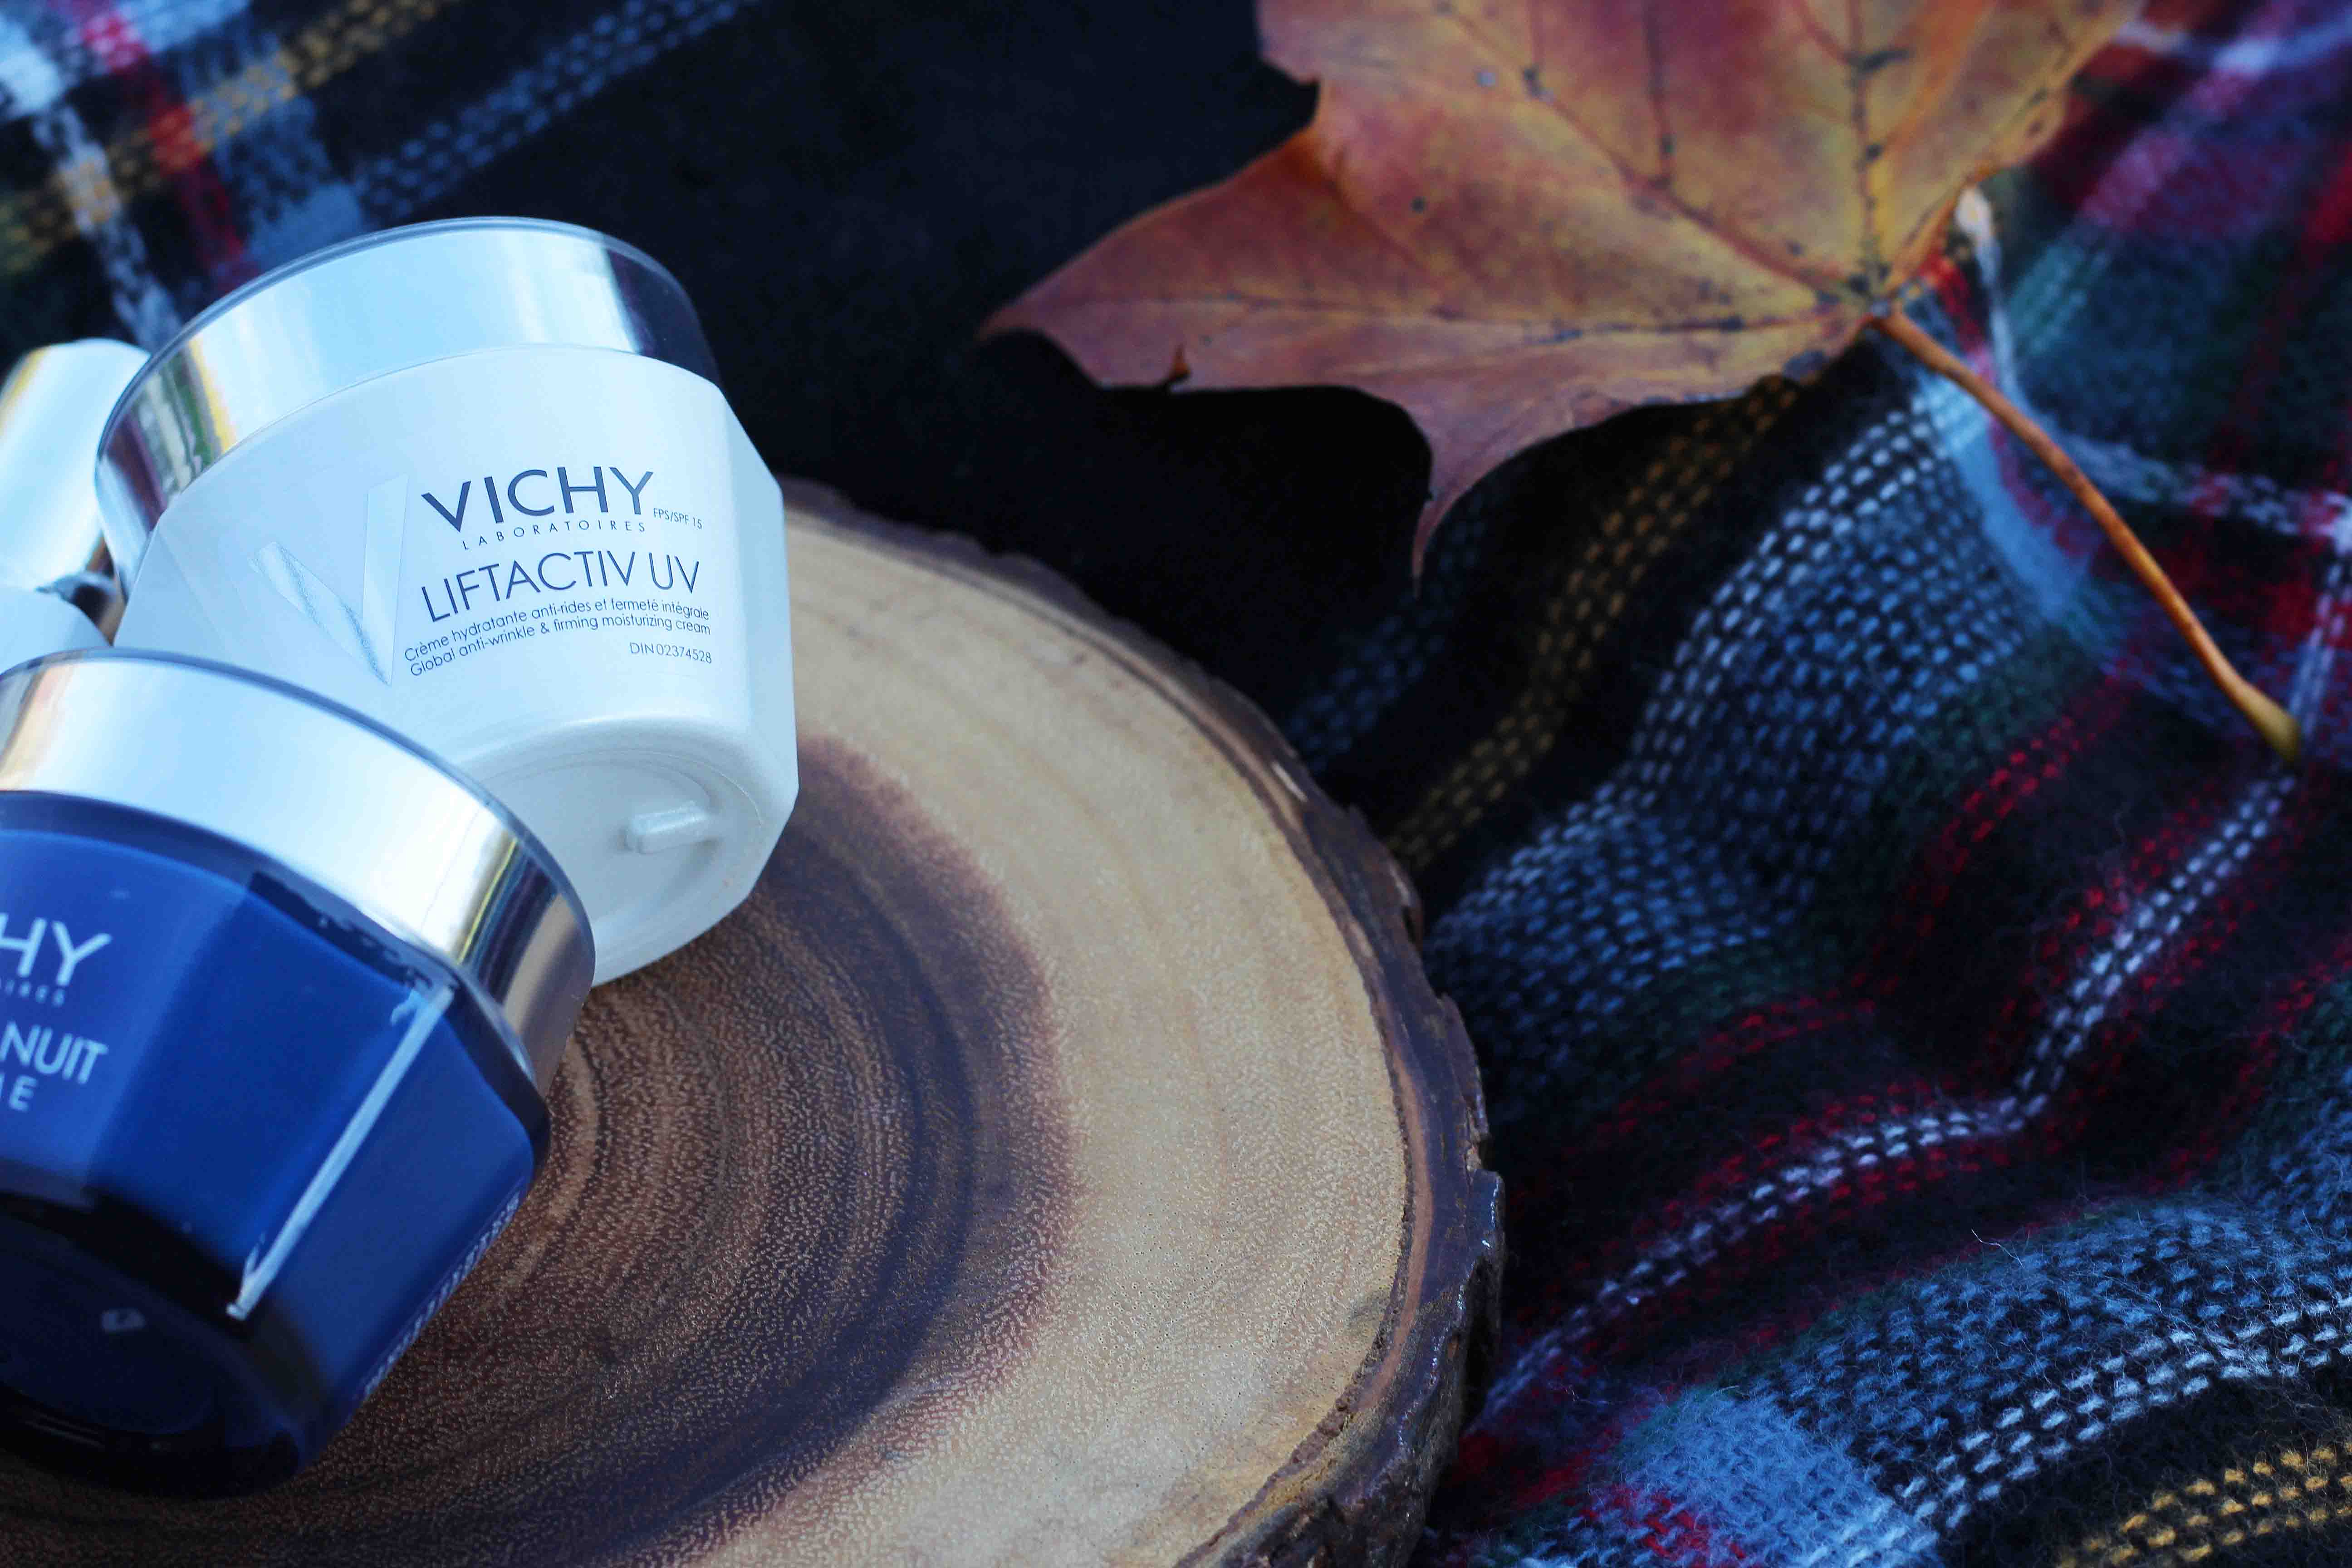 VichyLIFTACTIV VITAMIN C WITH HYALURONIC ACID review